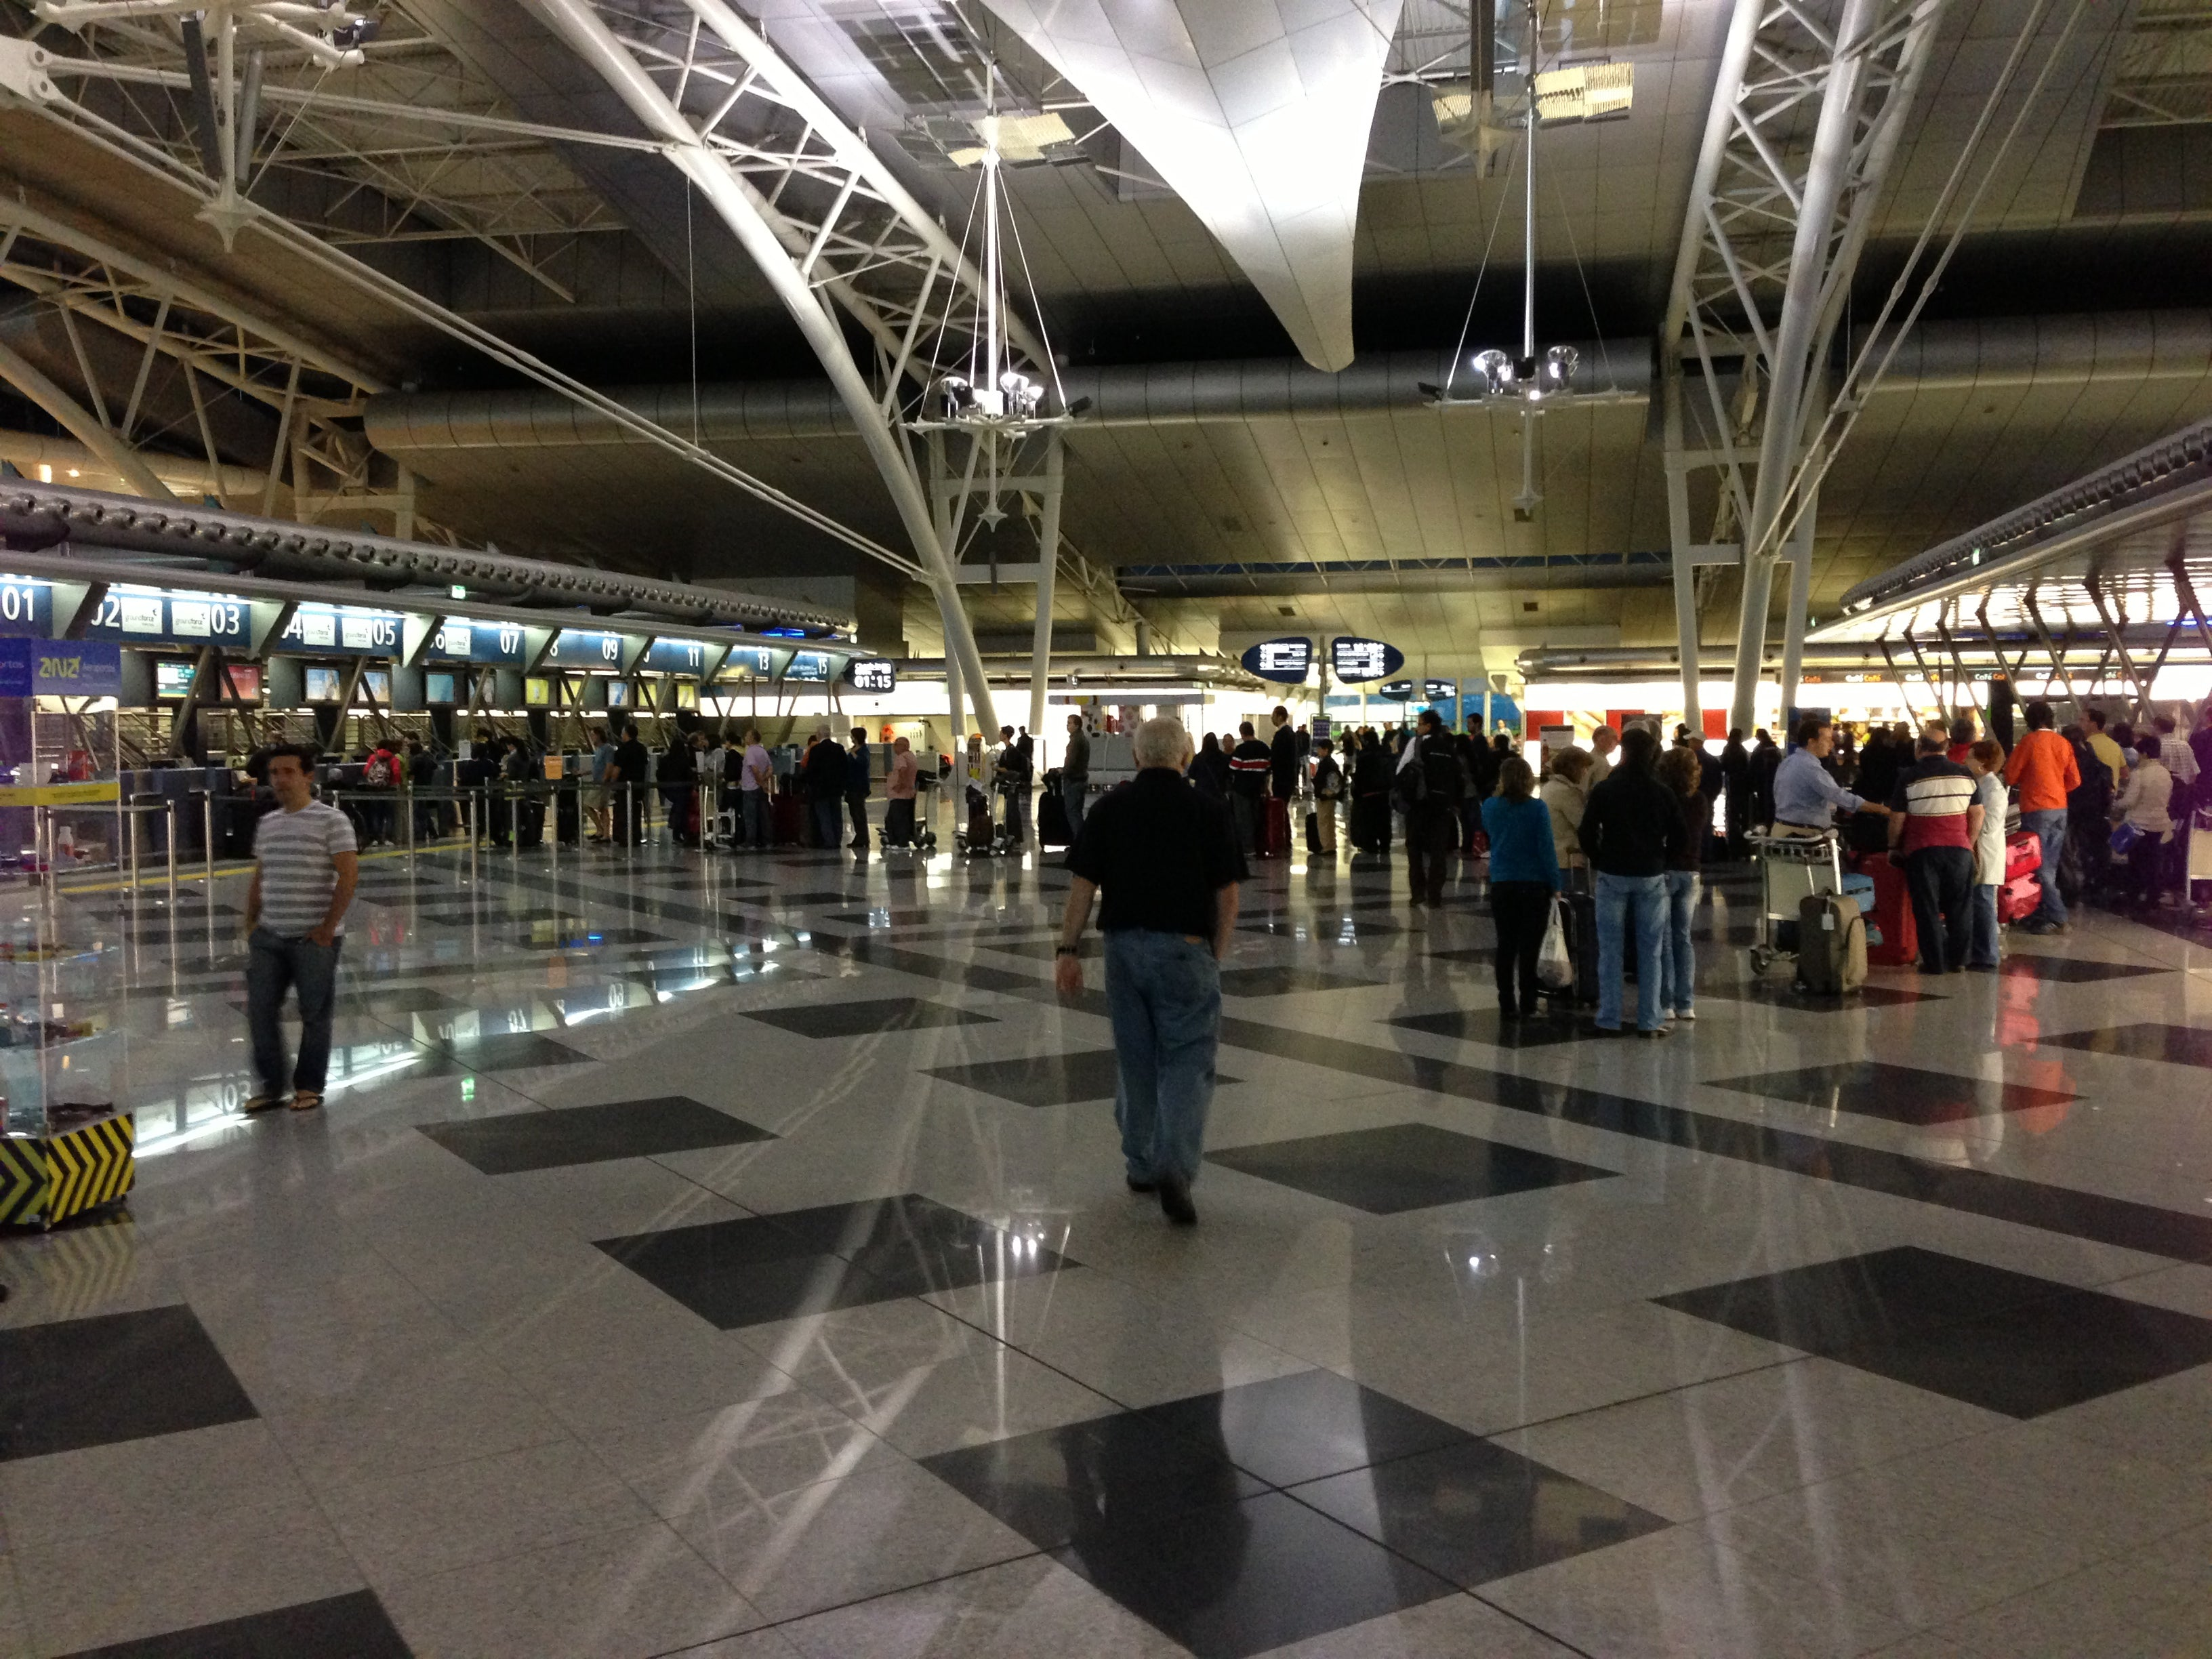 Airport lines as we are heading home from Portugal